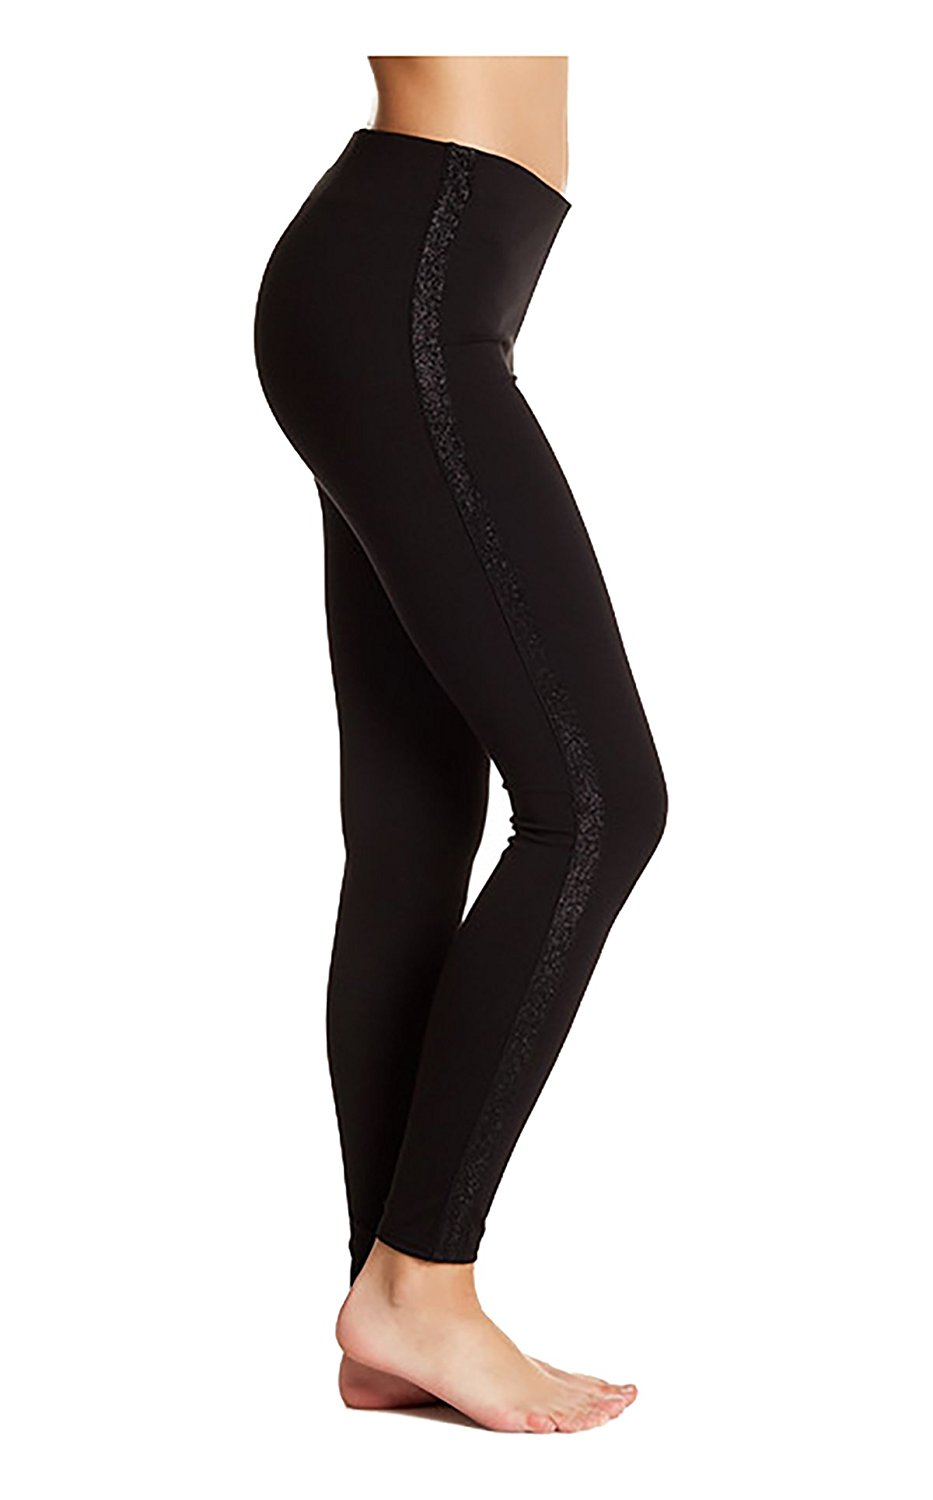 0bd0c88e62c Get Quotations · Hue Metallic Tuxedo Stripe Ponte Leggings Black Size  Medium 8-10